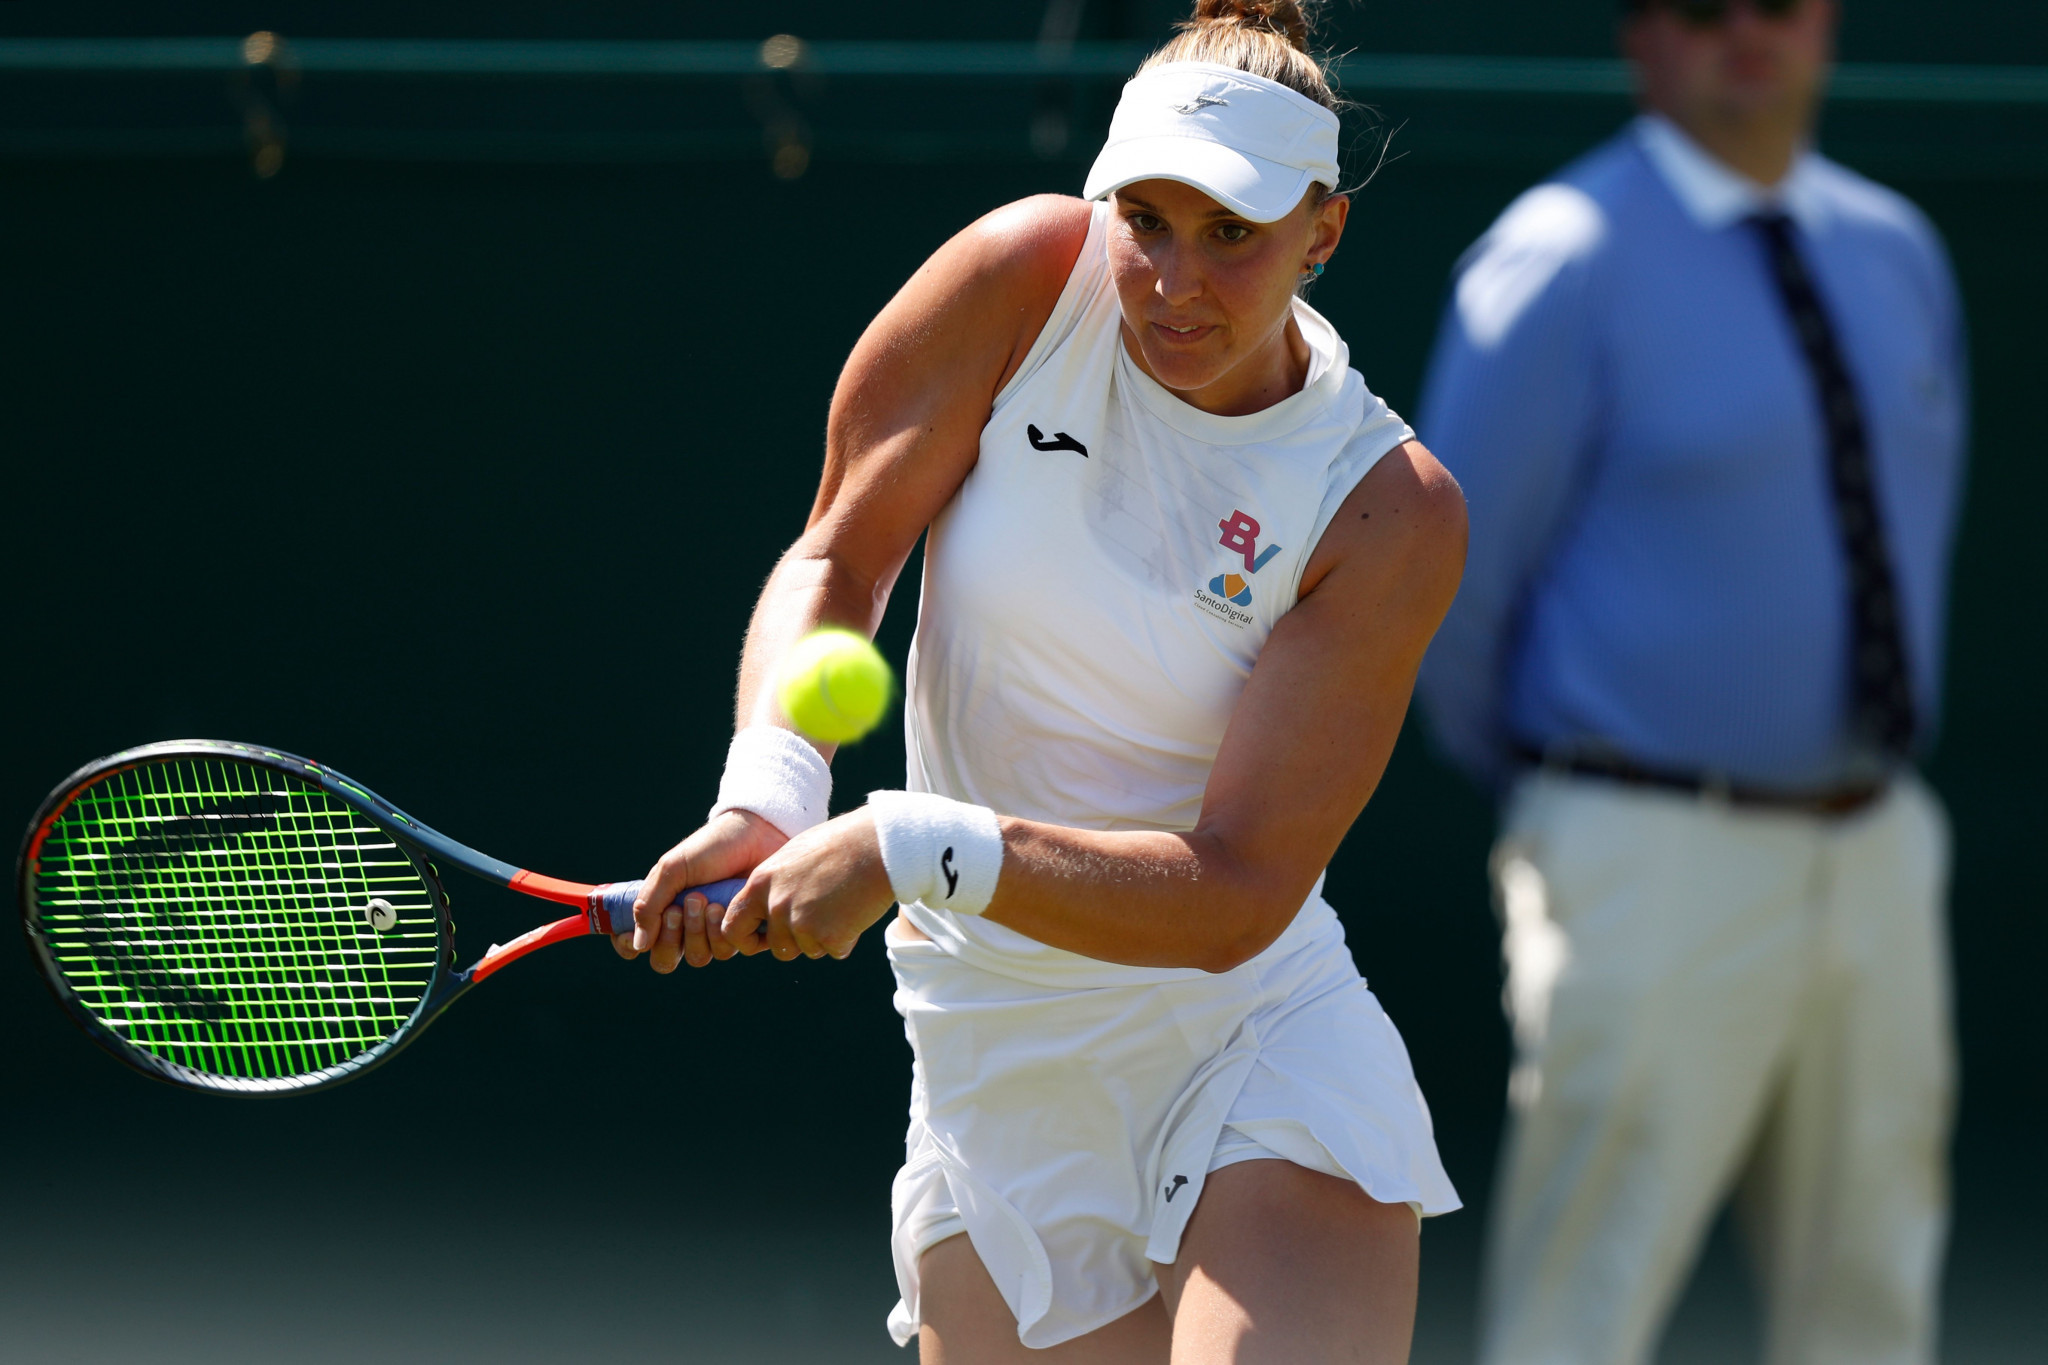 DOPING: WIMBLEDON GIANT-KILLER HADDAD MAIA PROVISIONALLY SUSPENDED